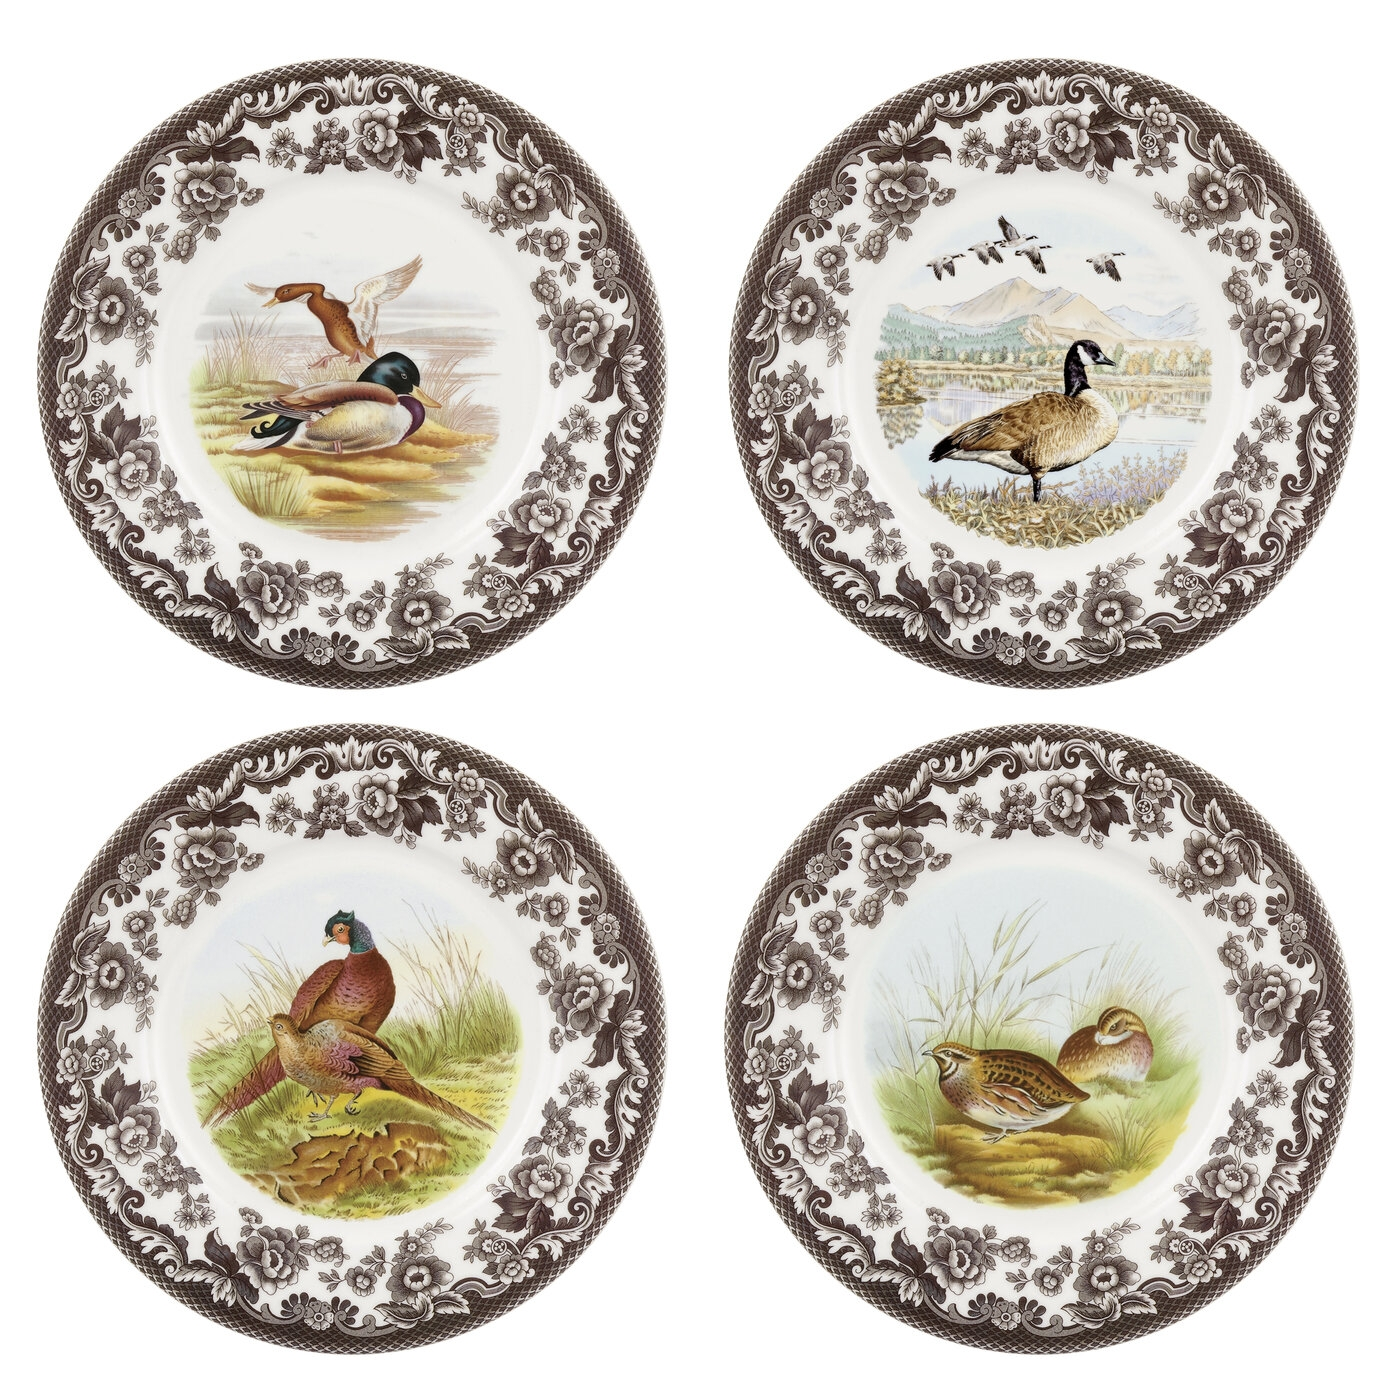 Spode Woodland 8 Inch Set of 4 Salad Plates (Birds) image number 0